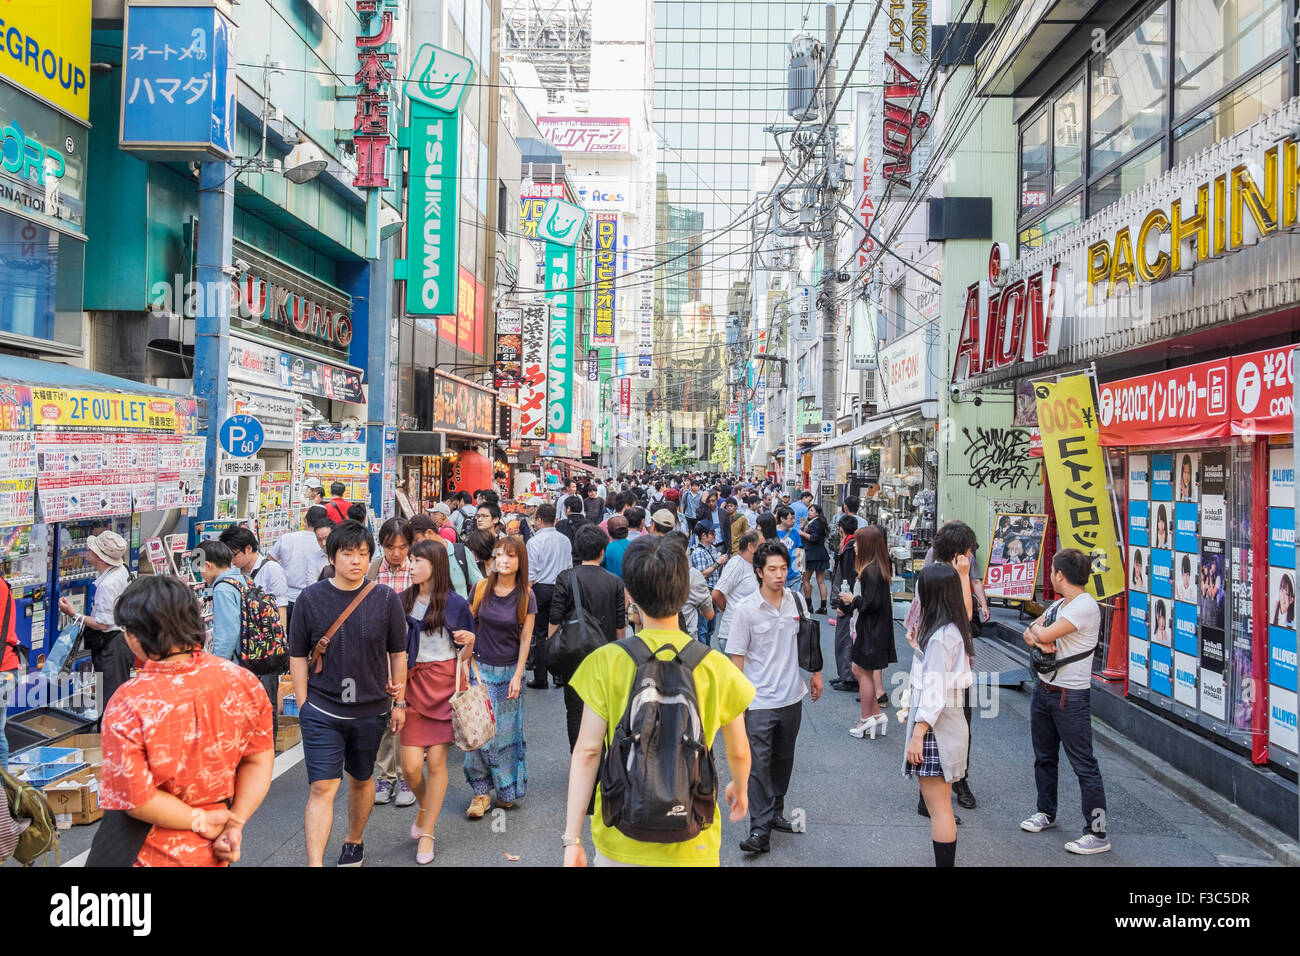 Busy street in Akihabara known as Electric Town or Geek Town selling Manga based games and videos in Tokyo Japan - Stock Image